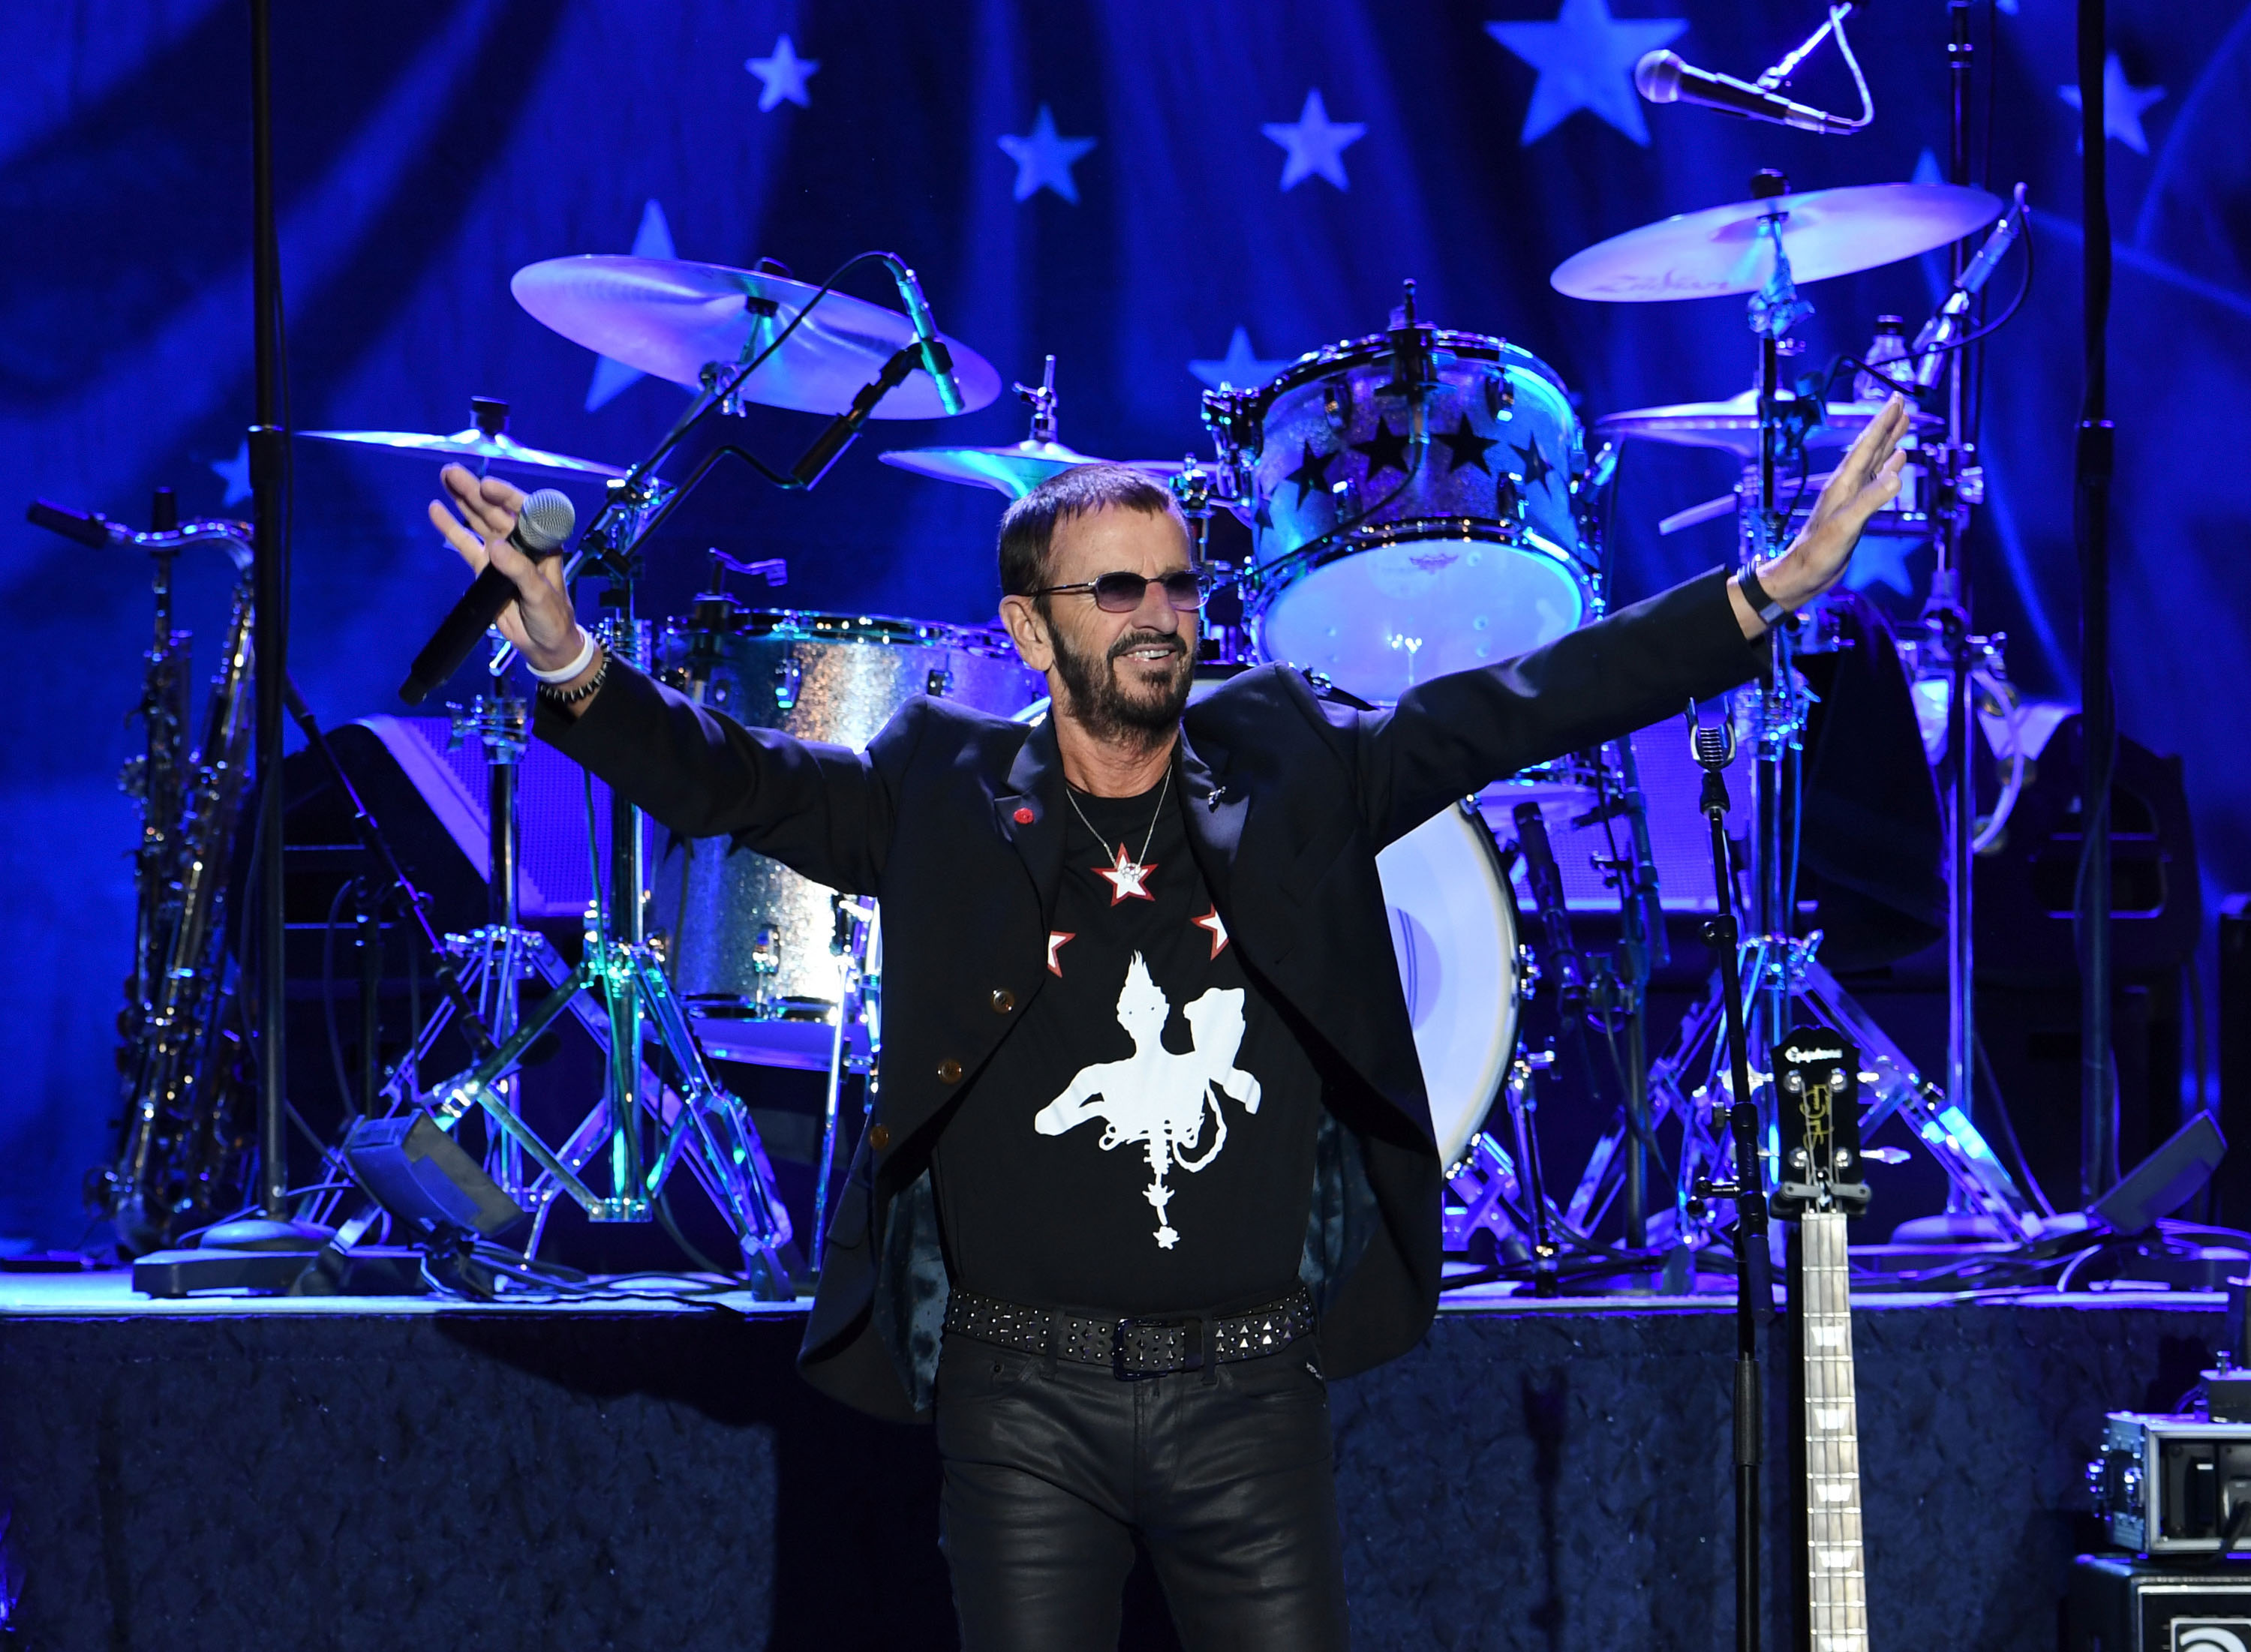 Recording artist Ringo Starr performs with Ringo Starr & His All-Starr Band at Planet Hollywood Resort & Casino in support of his new album  Give More Love  on October 20, 2017 in Las Vegas, Nevada.